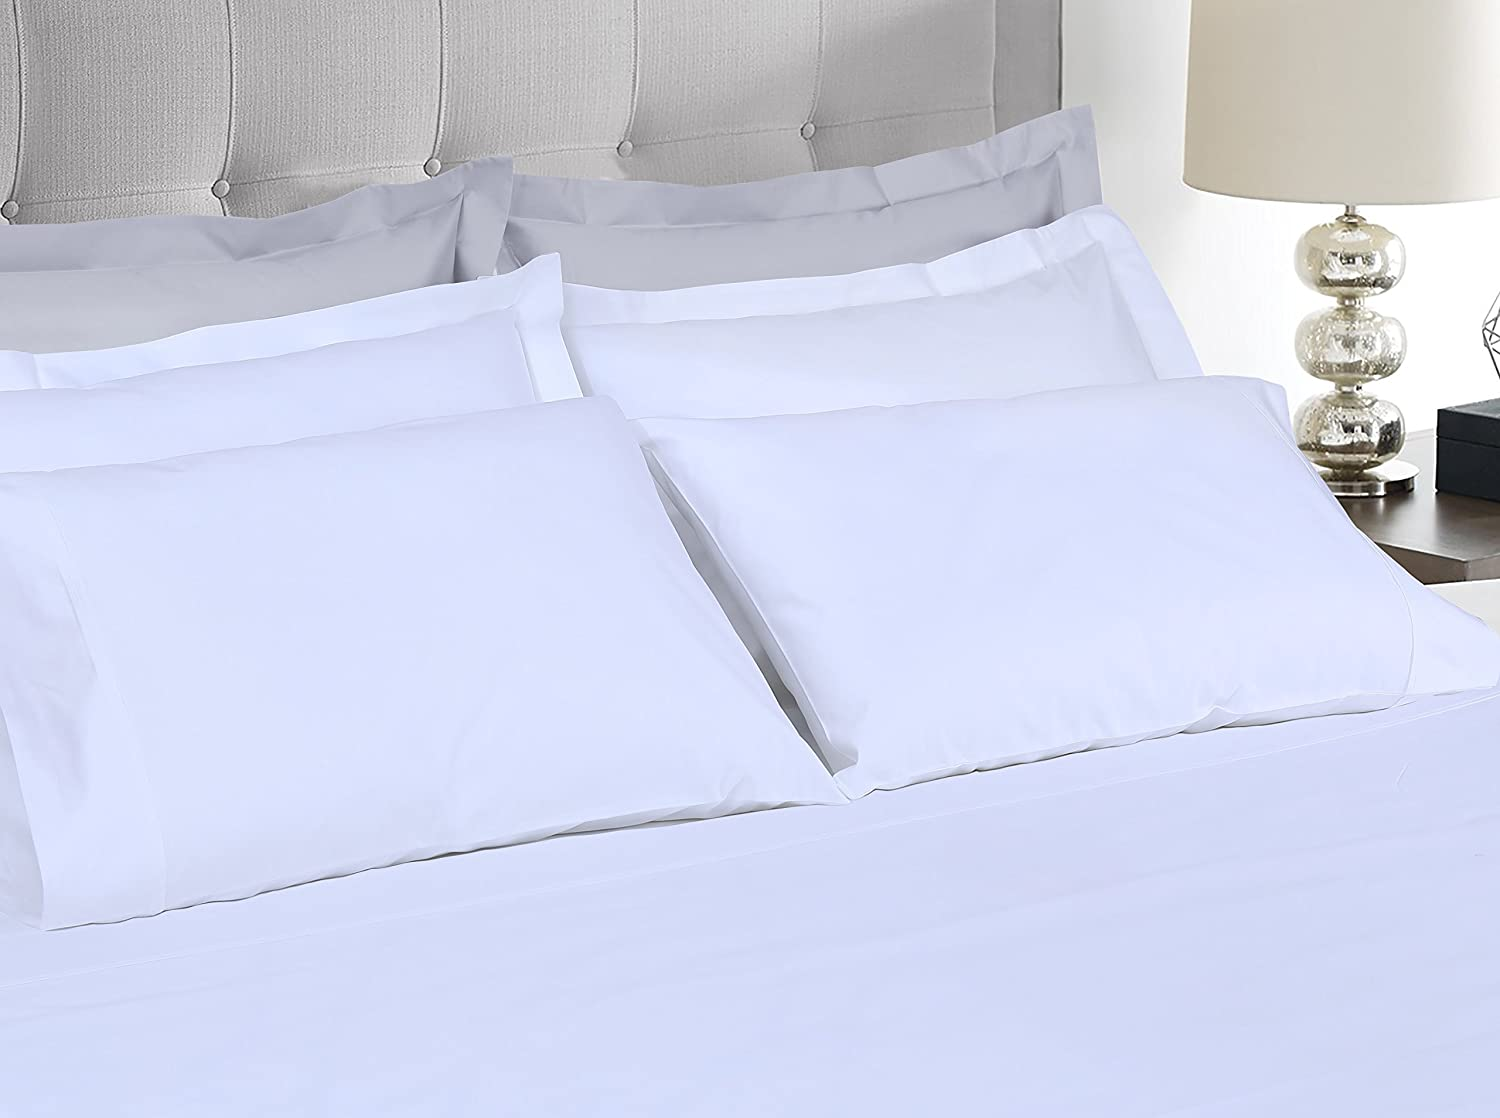 Threadmill Home Linen 1200 Thread Count 100% SUPIMA ELS cotton sheets, Super Luxury bedding, 4 piece King bed sheet set, Fits Mattresses up to 18 inches deep, White, Smooth Sateen Weave.